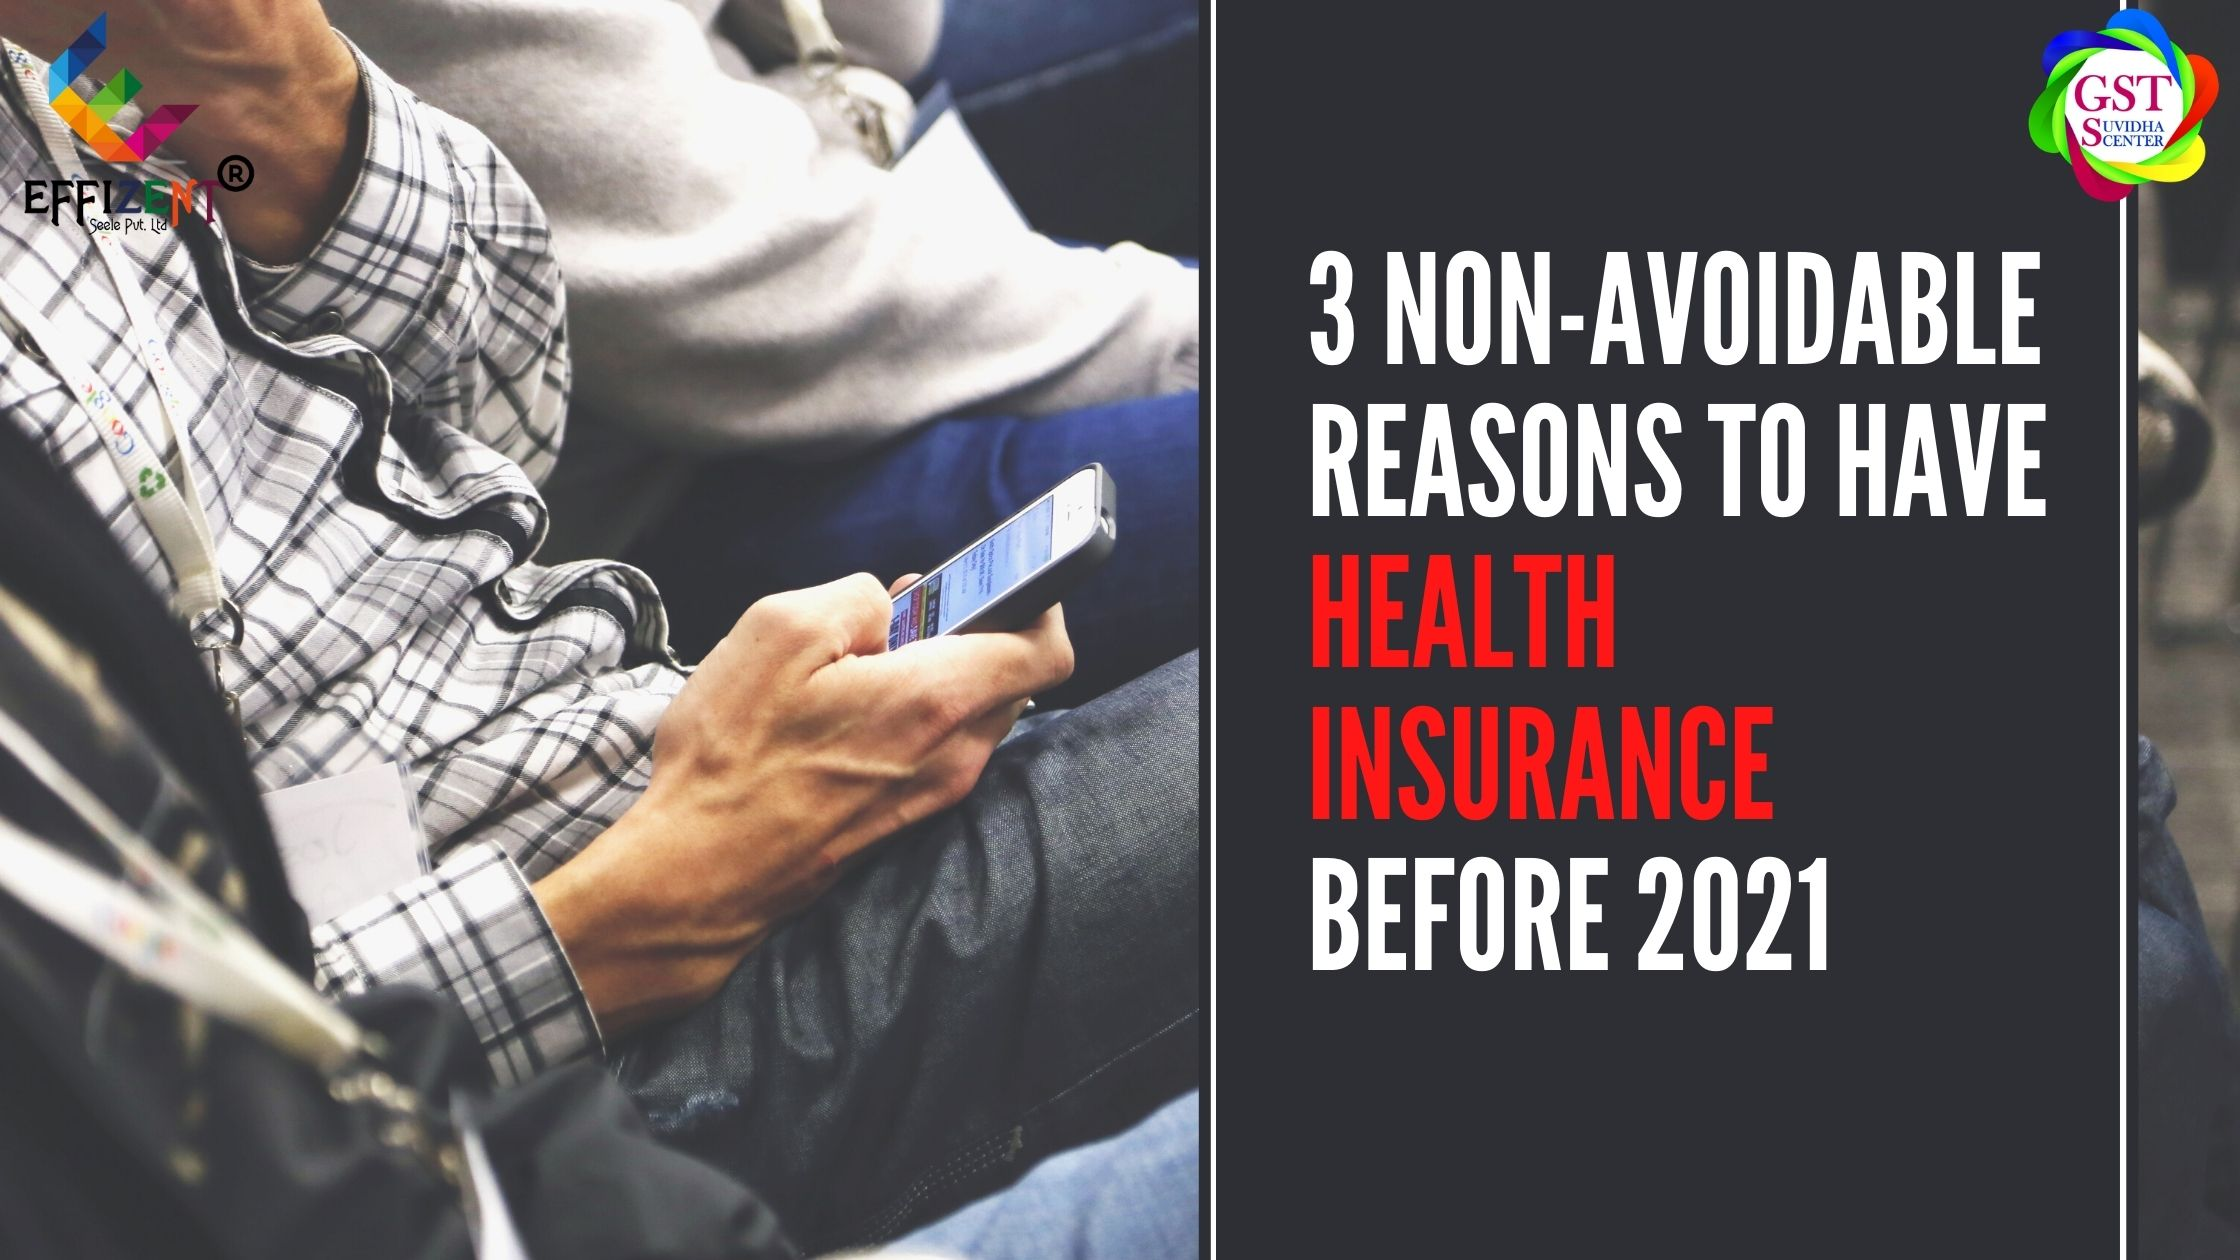 3 Non-Avoidable Reasons to have Health Insurance before 2021